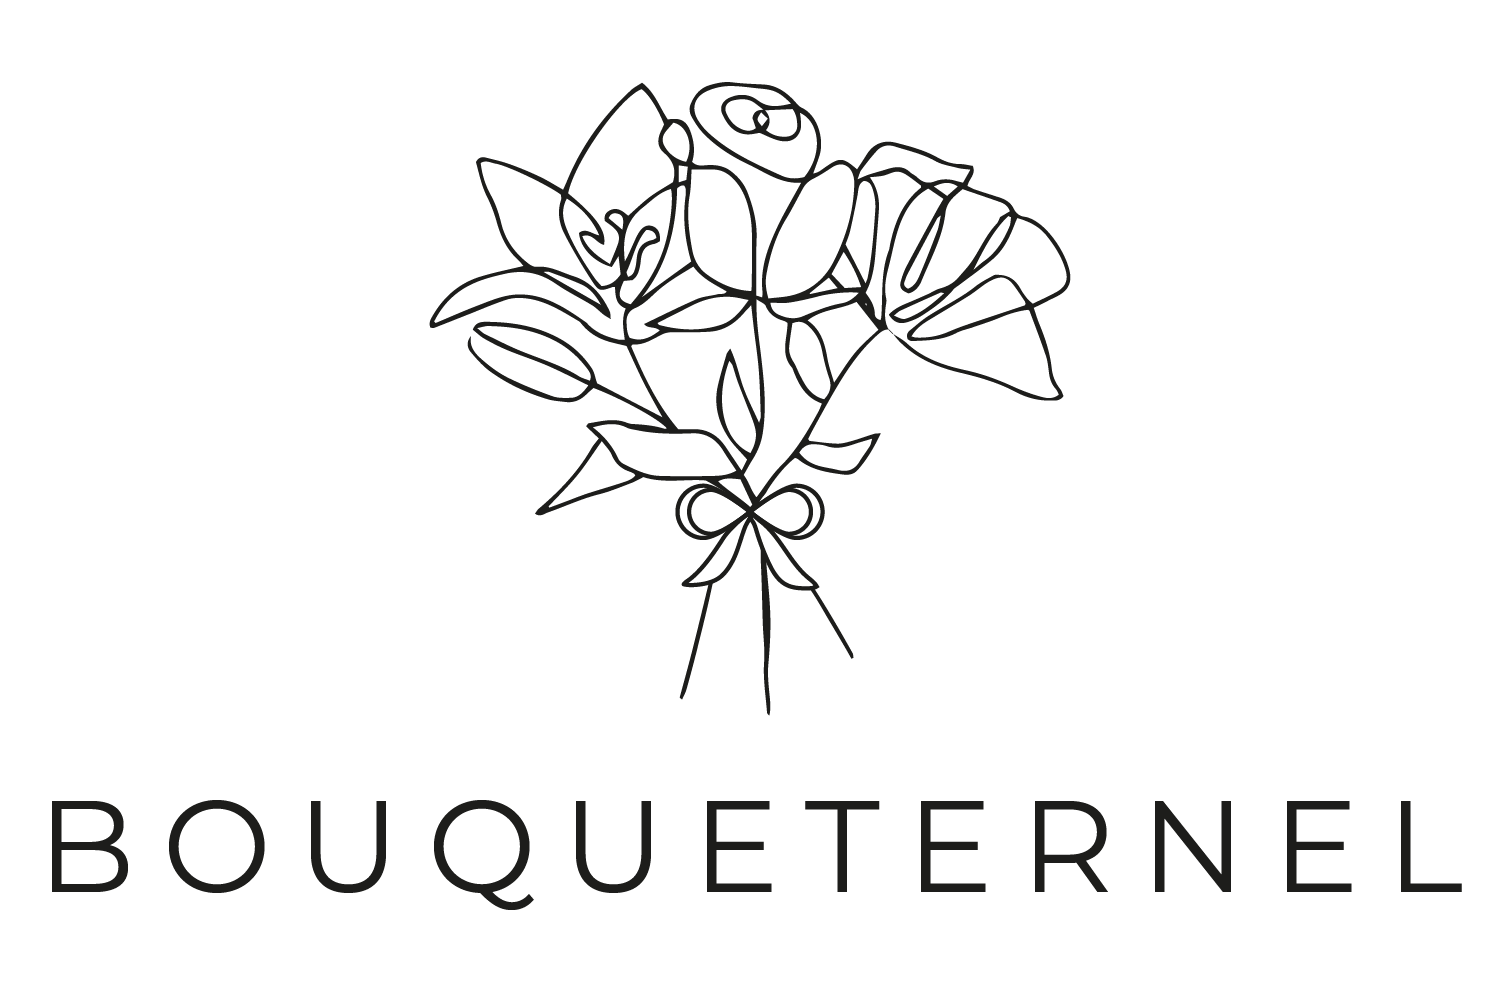 Bouqueternel